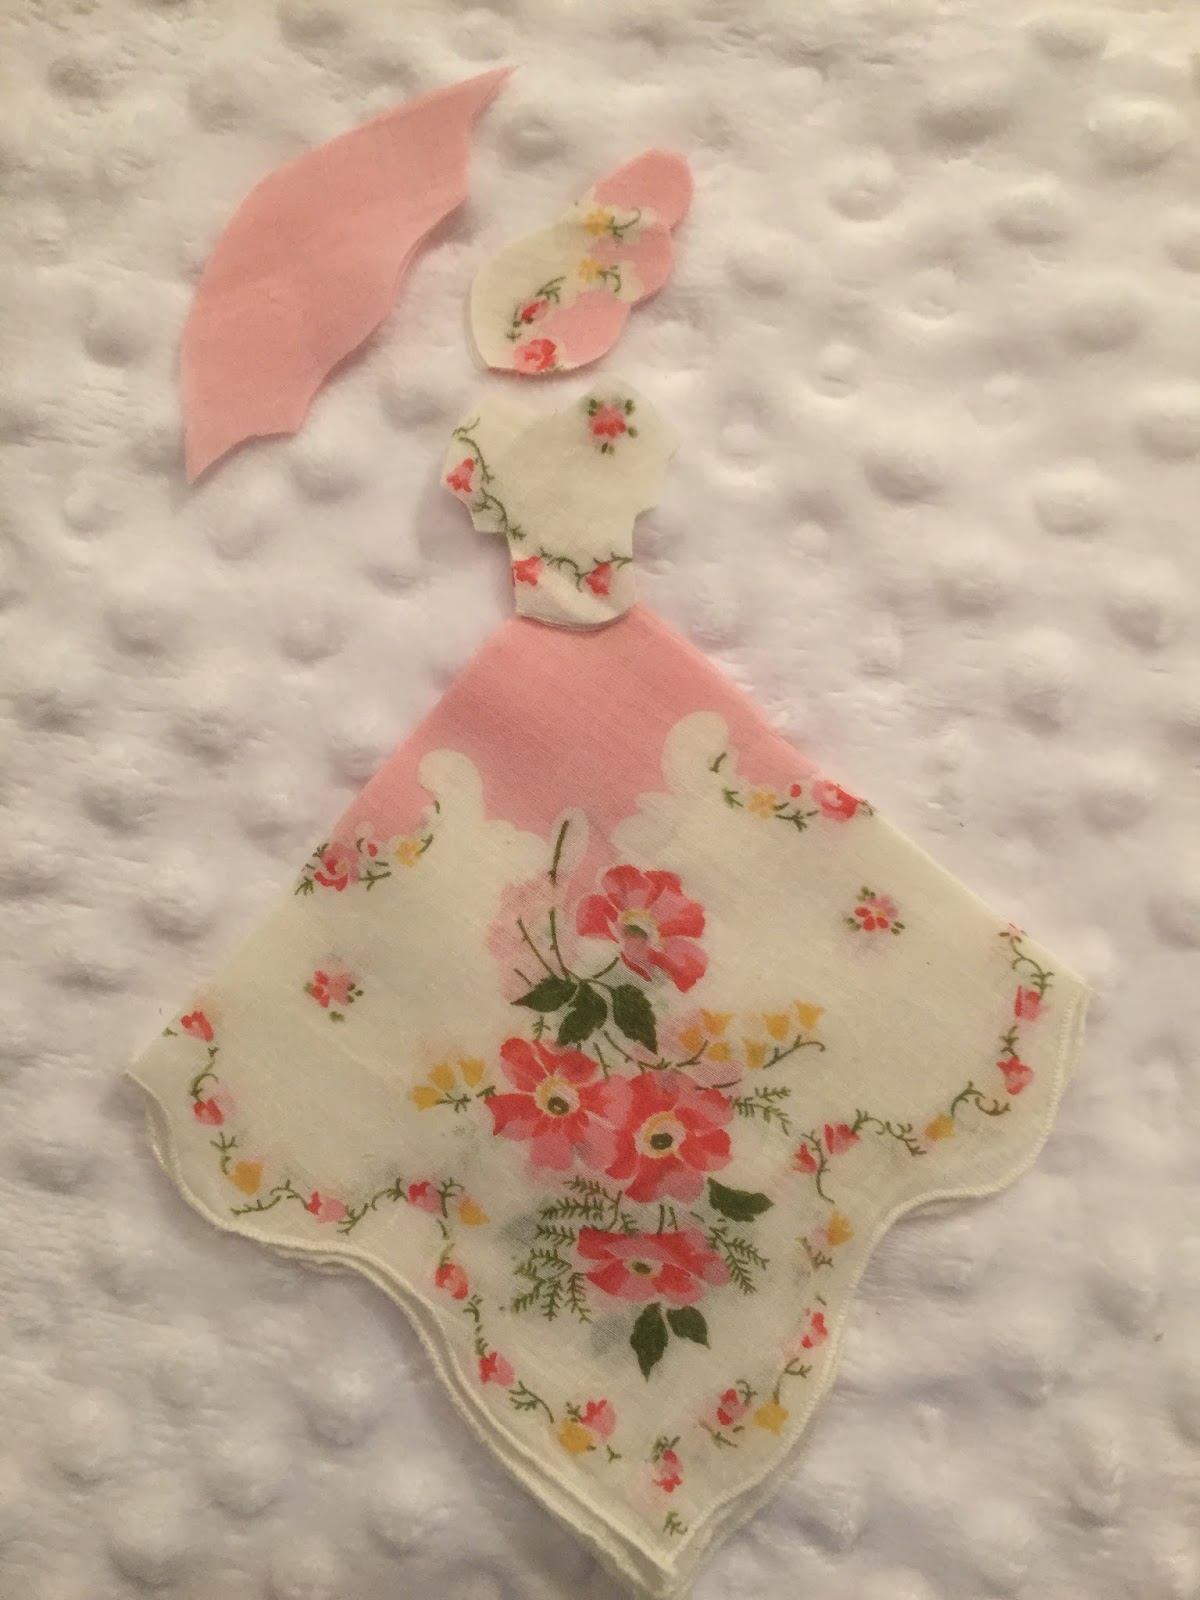 Sun Bonnet pattern: Sunbonnets were a necessary and functional Pattern for old fashioned sunbonnet